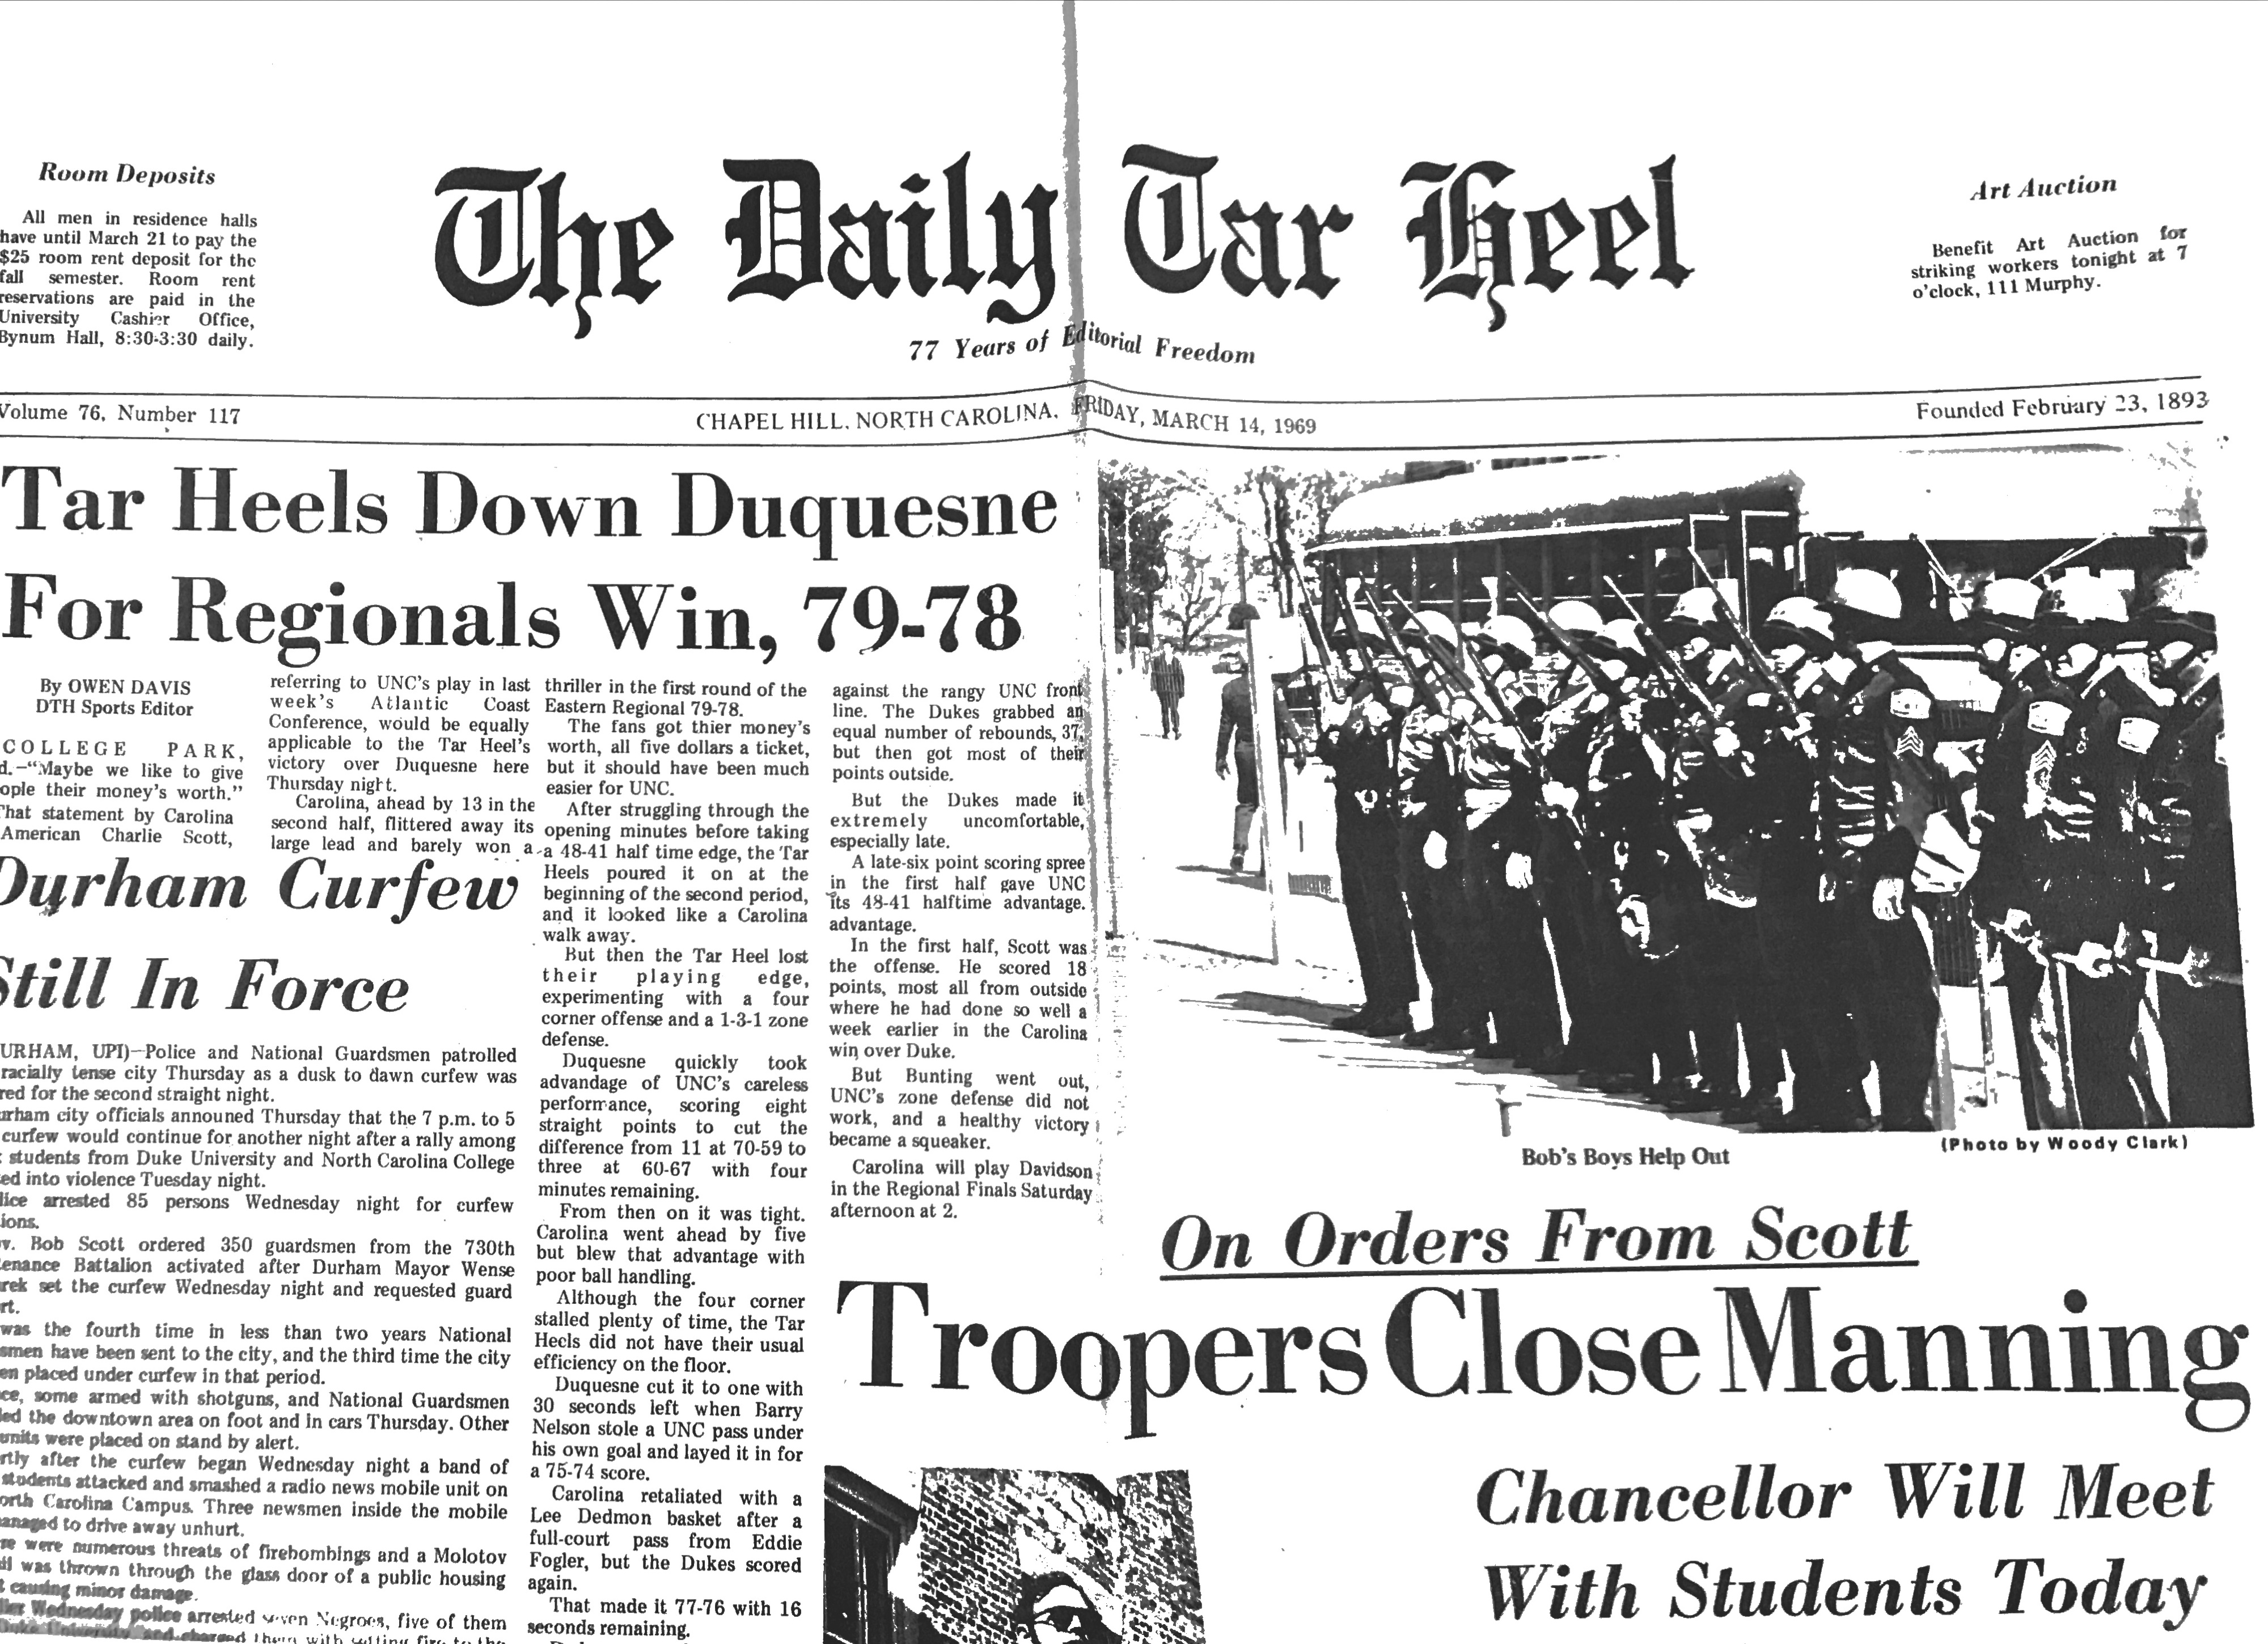 Newspaper headline from The Daily Tarheel on March 14, 1969, announcing the closing of Manning Hall and its Soul Food cafeteria. Governor Bob Scott ordered state troopers to assist in the evacuation of protesters and foodworkers.